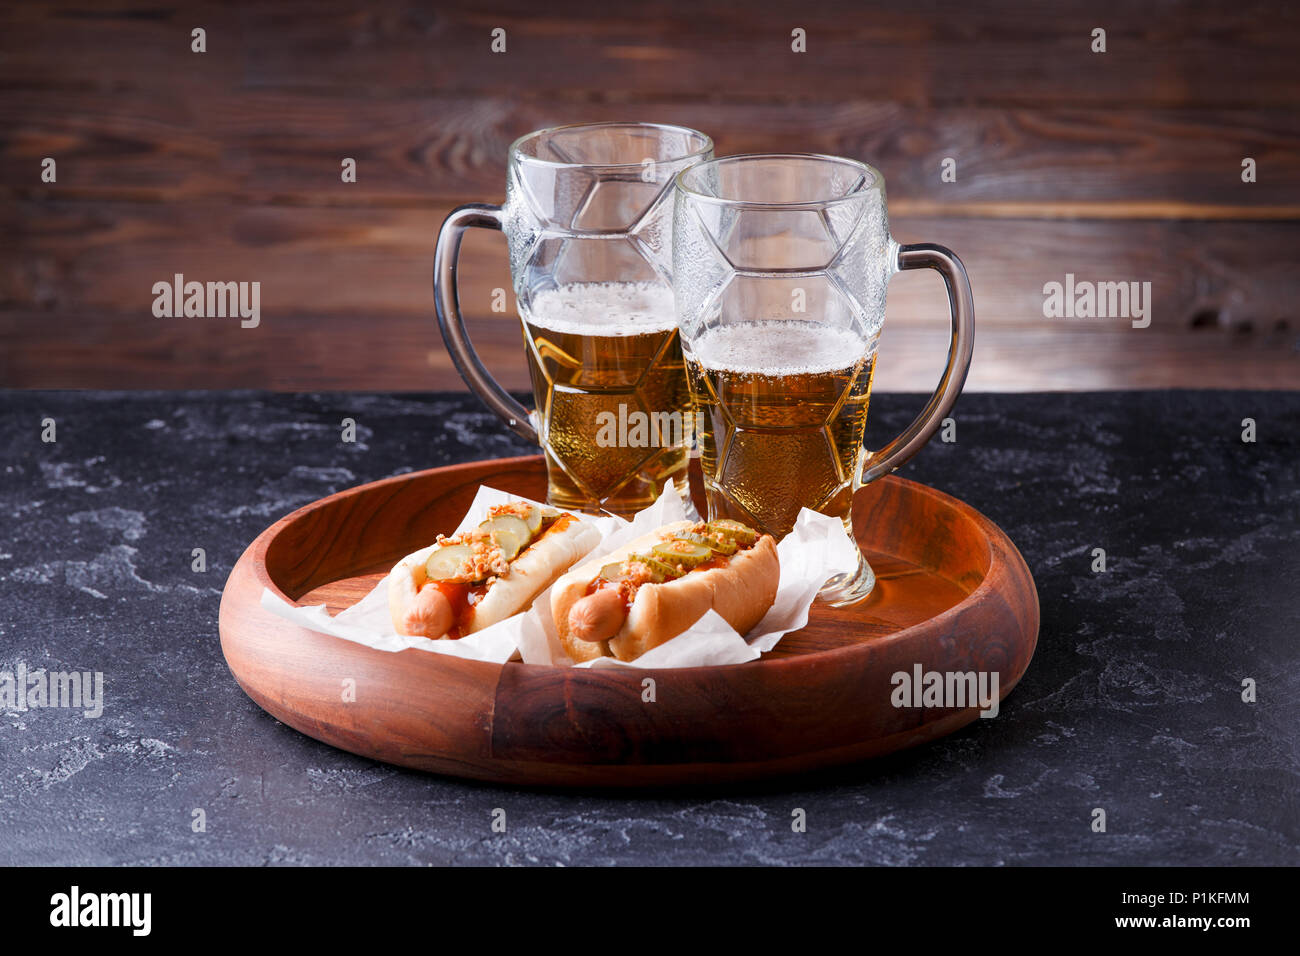 Photo of two mugs of beer and hot dogs on wooden tray Stock Photo